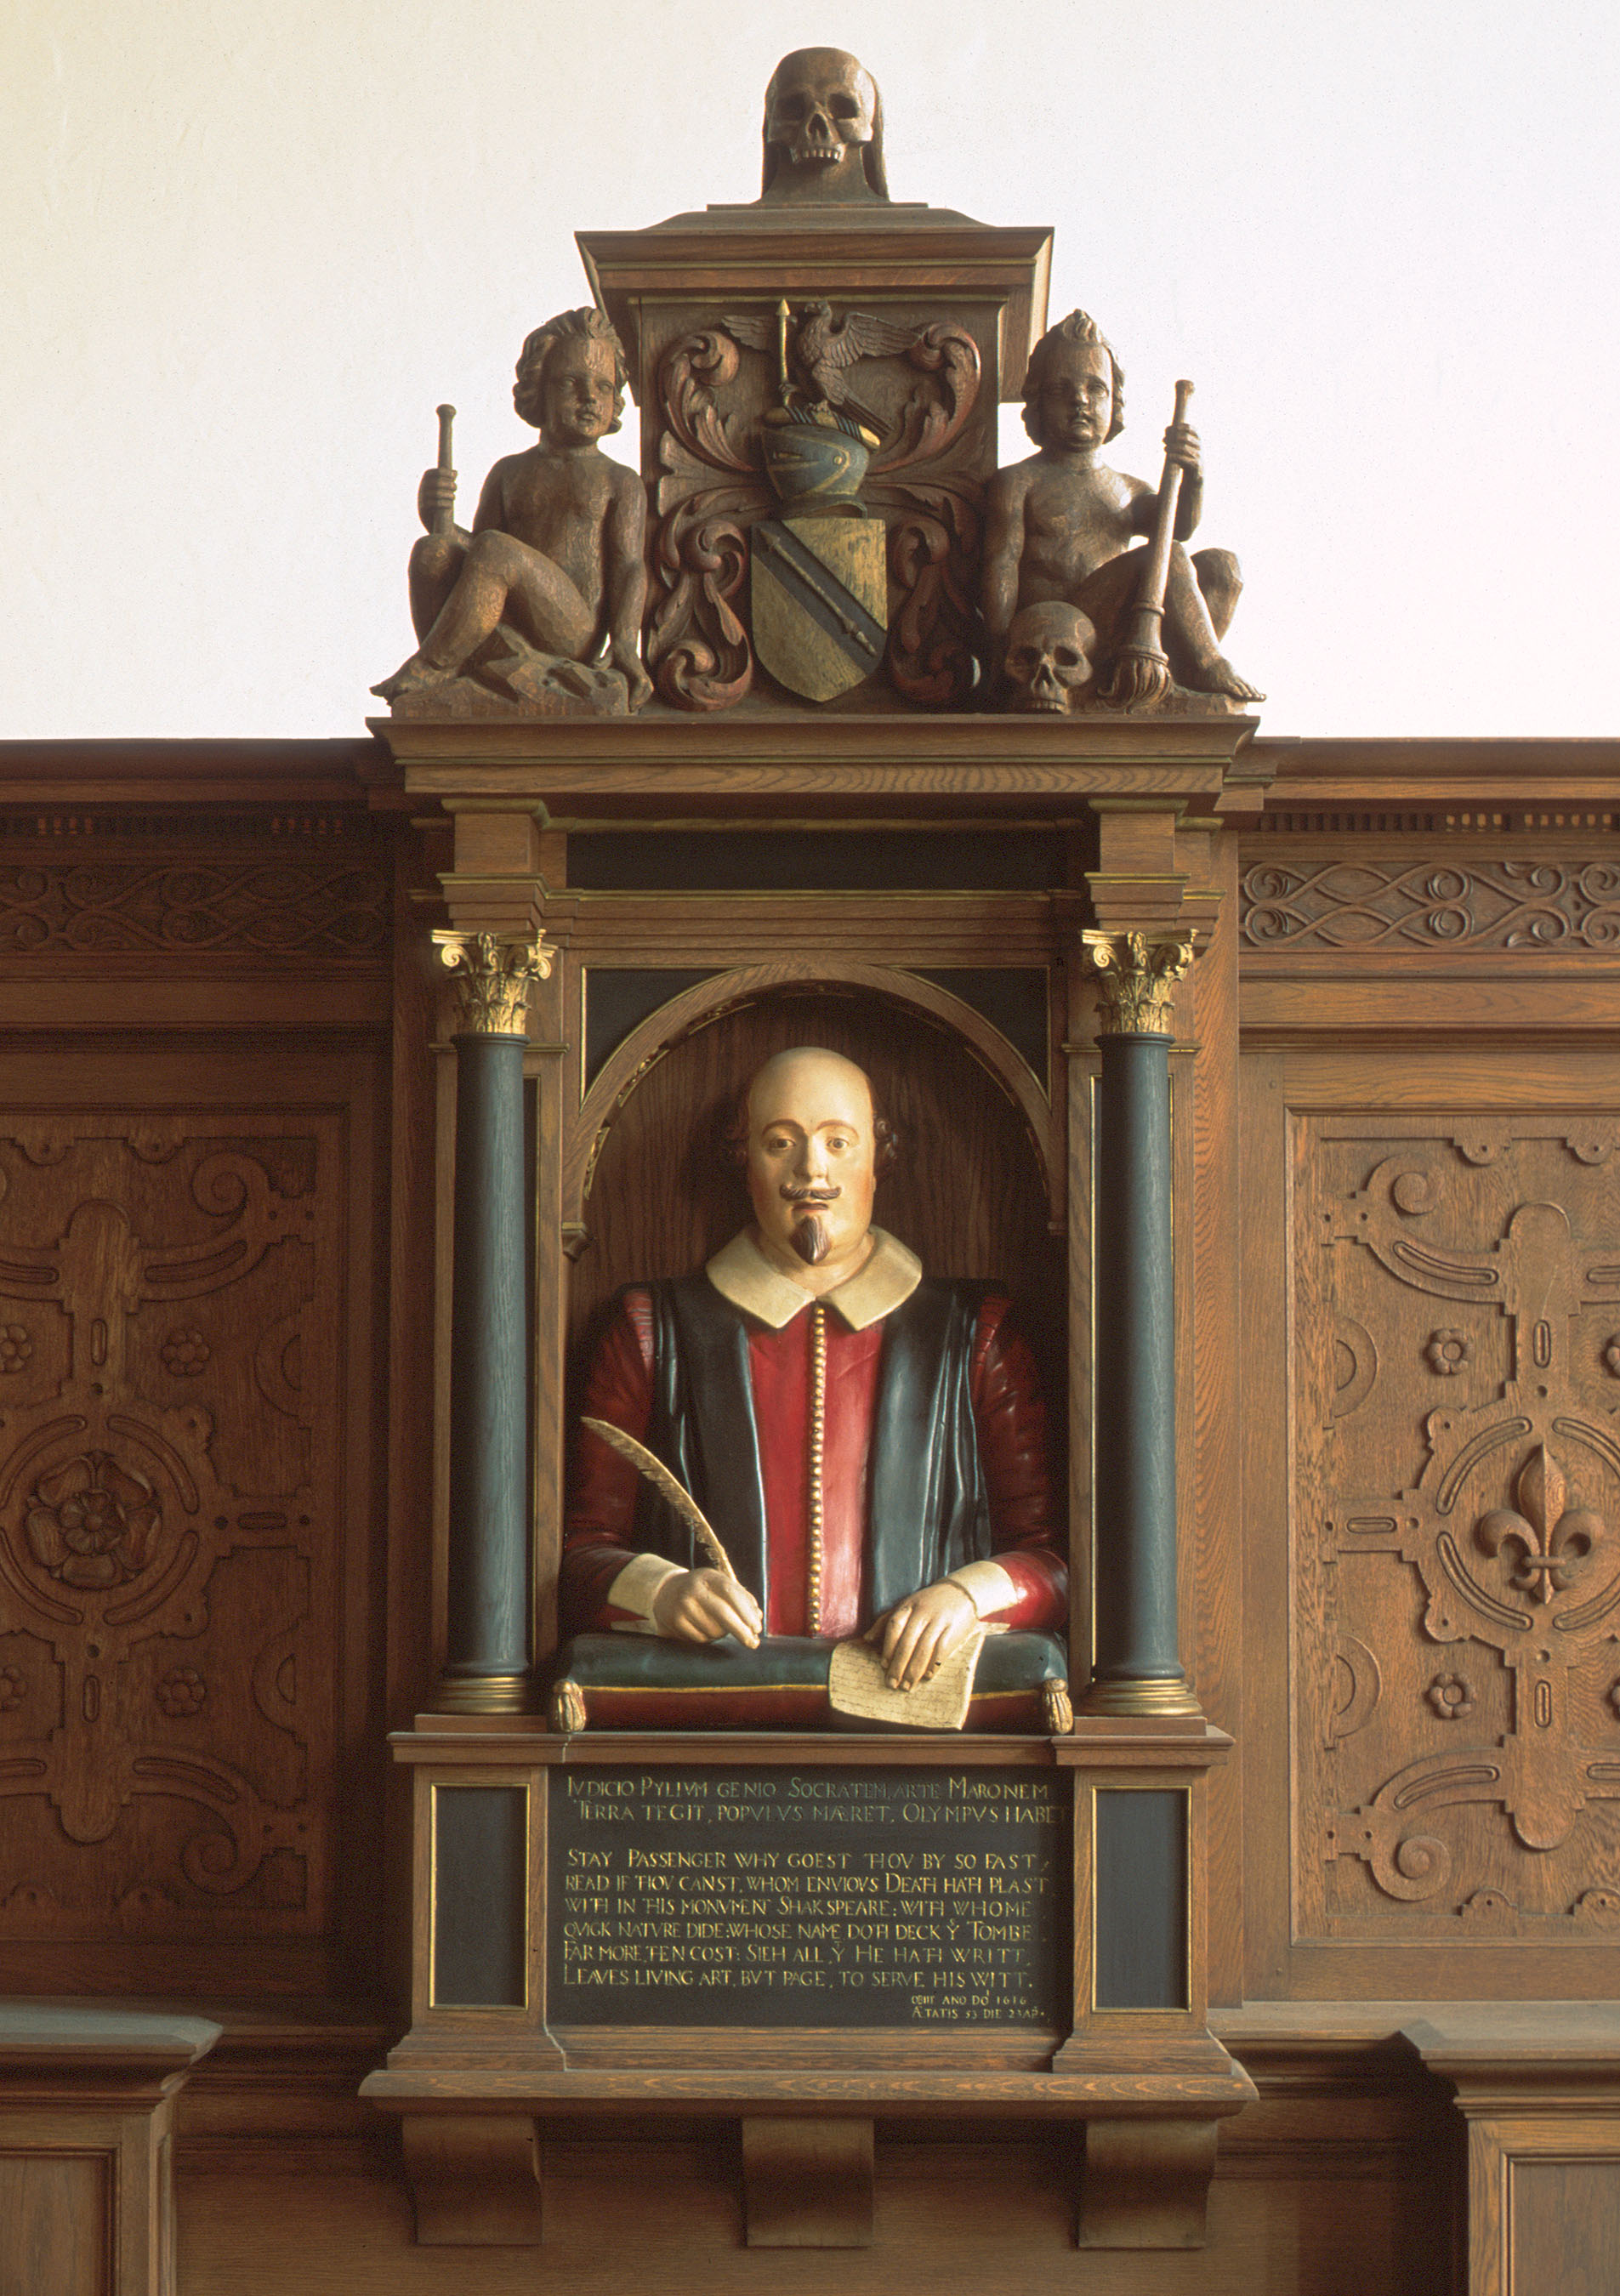 Shakespeare's bust